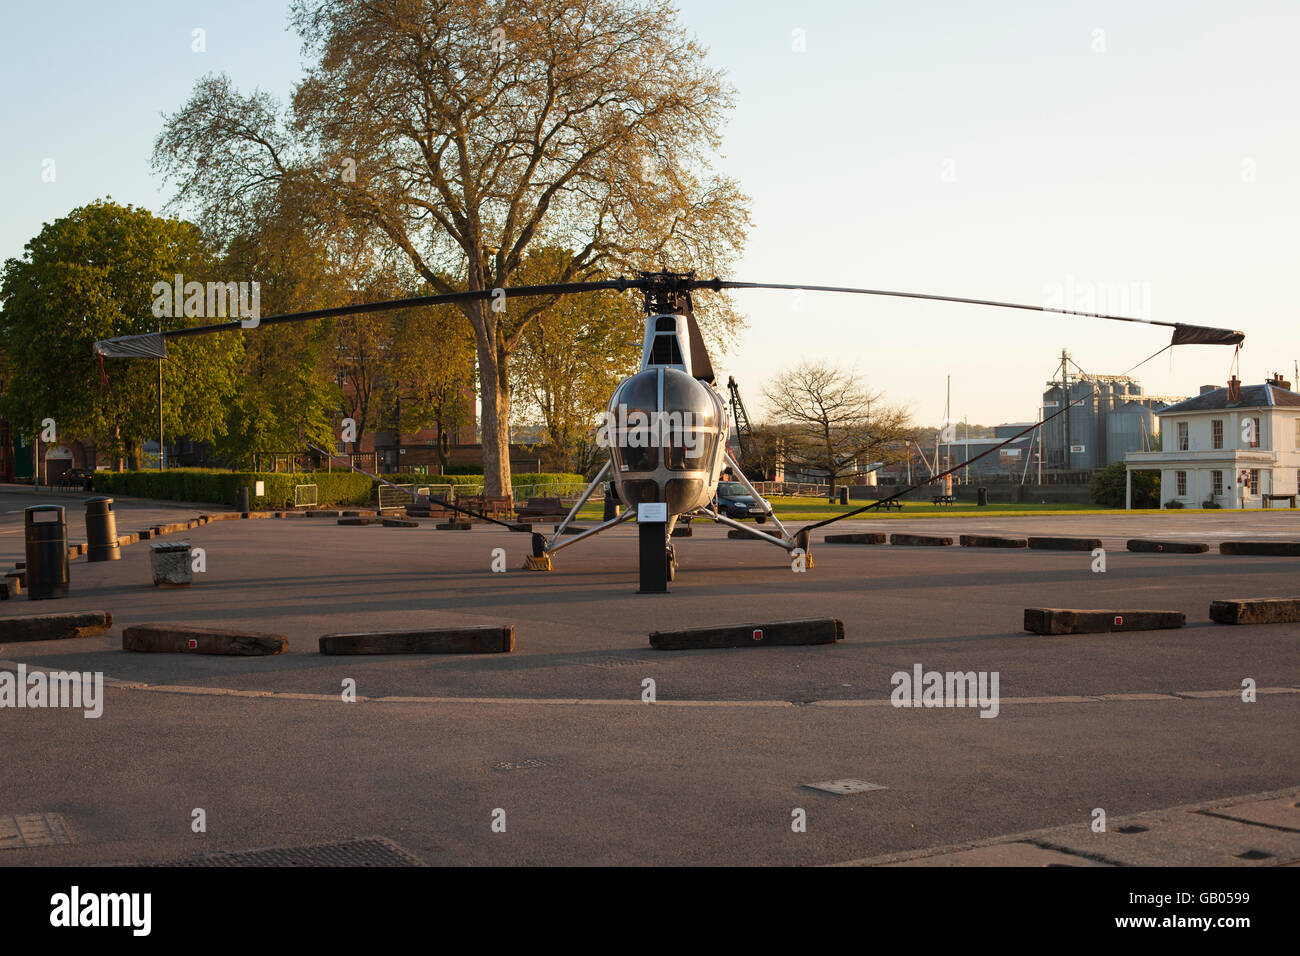 Helicopter at Chatham Historic Dockyard - Stock Image